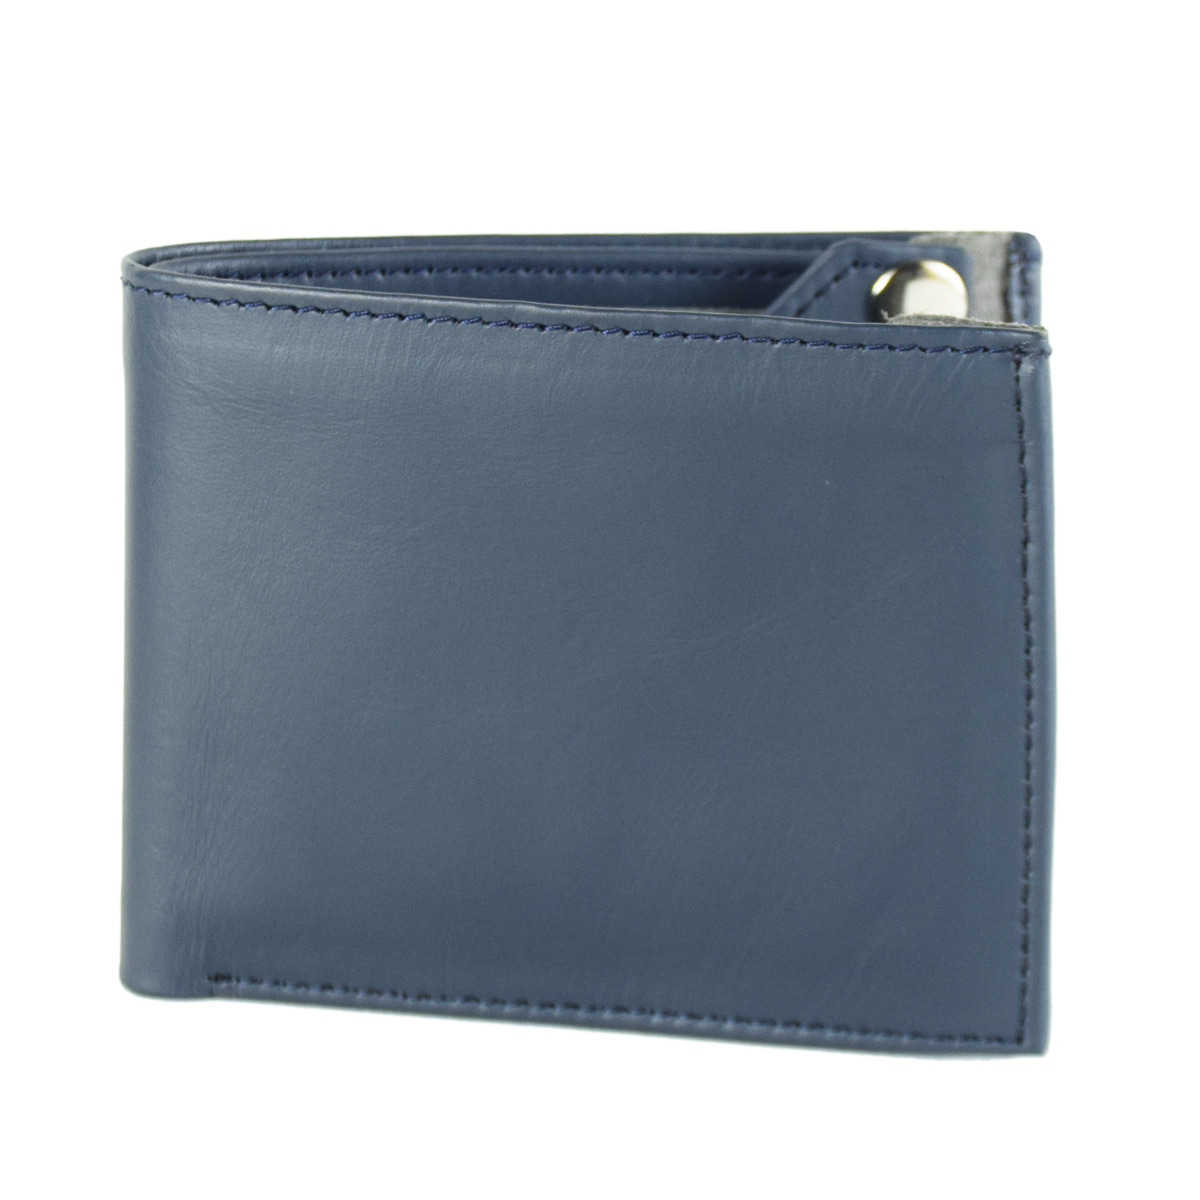 BLUE WALLET WITH UNIQUE CARD HOLDER